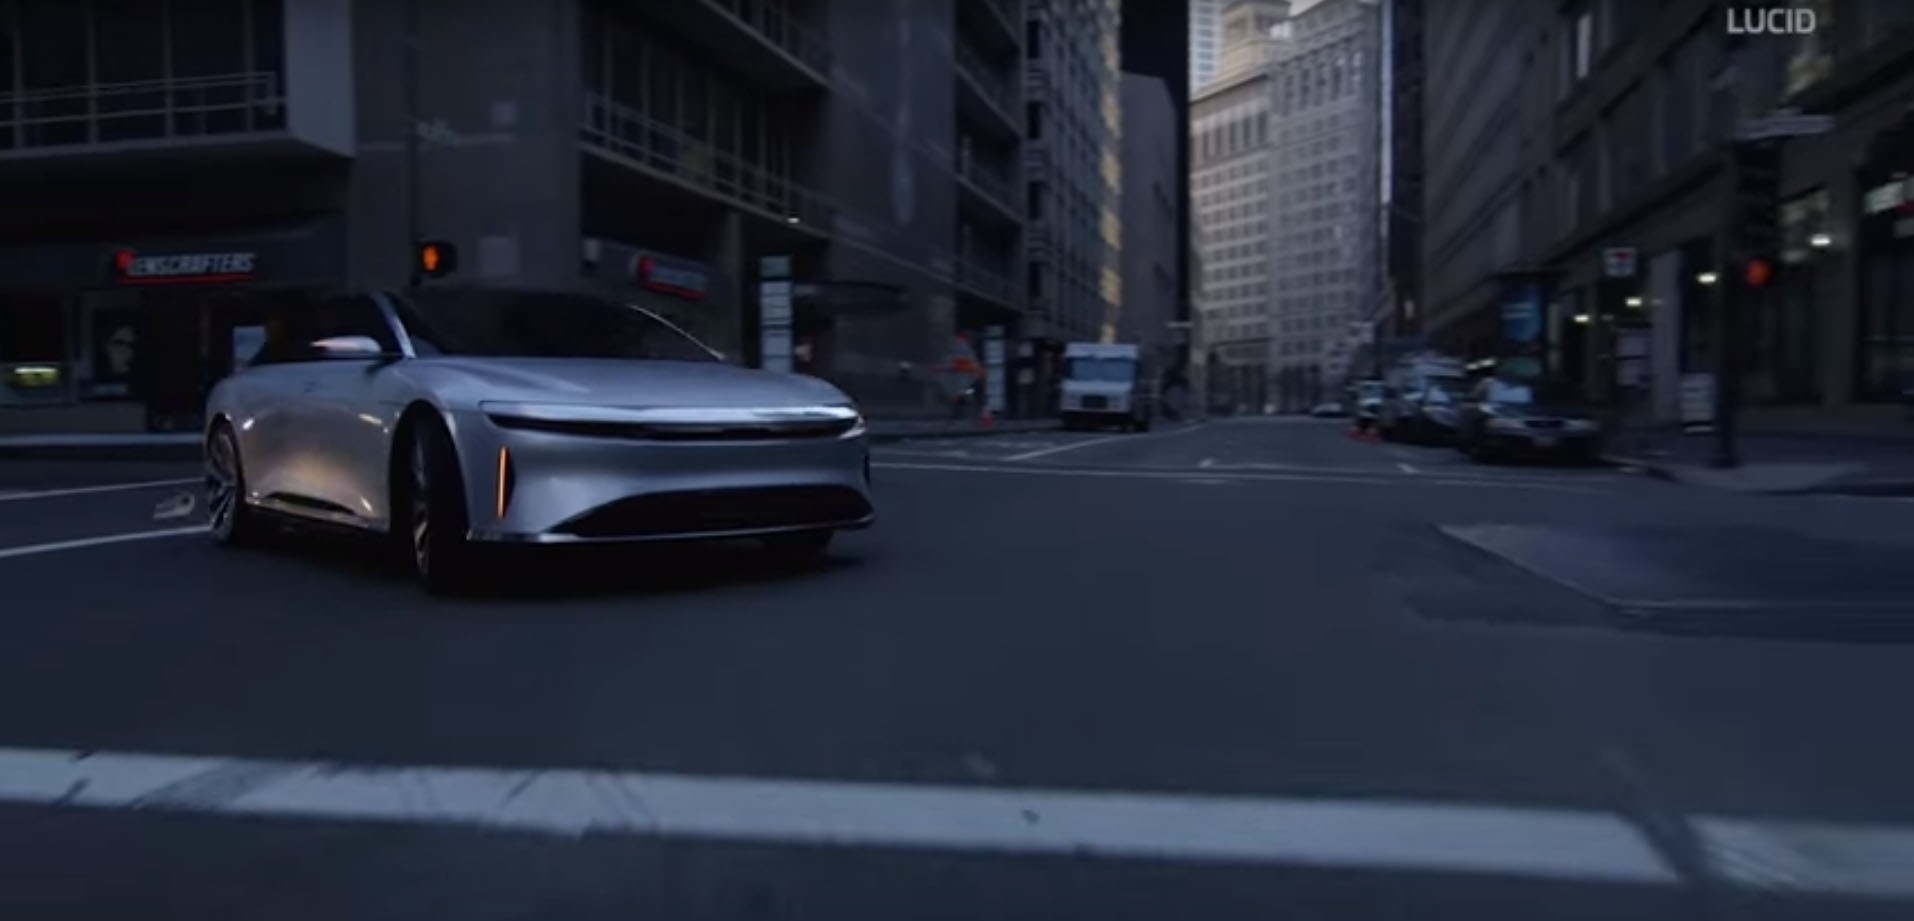 Lucid Motors Ready To Quot Revolutionize The Electric Car